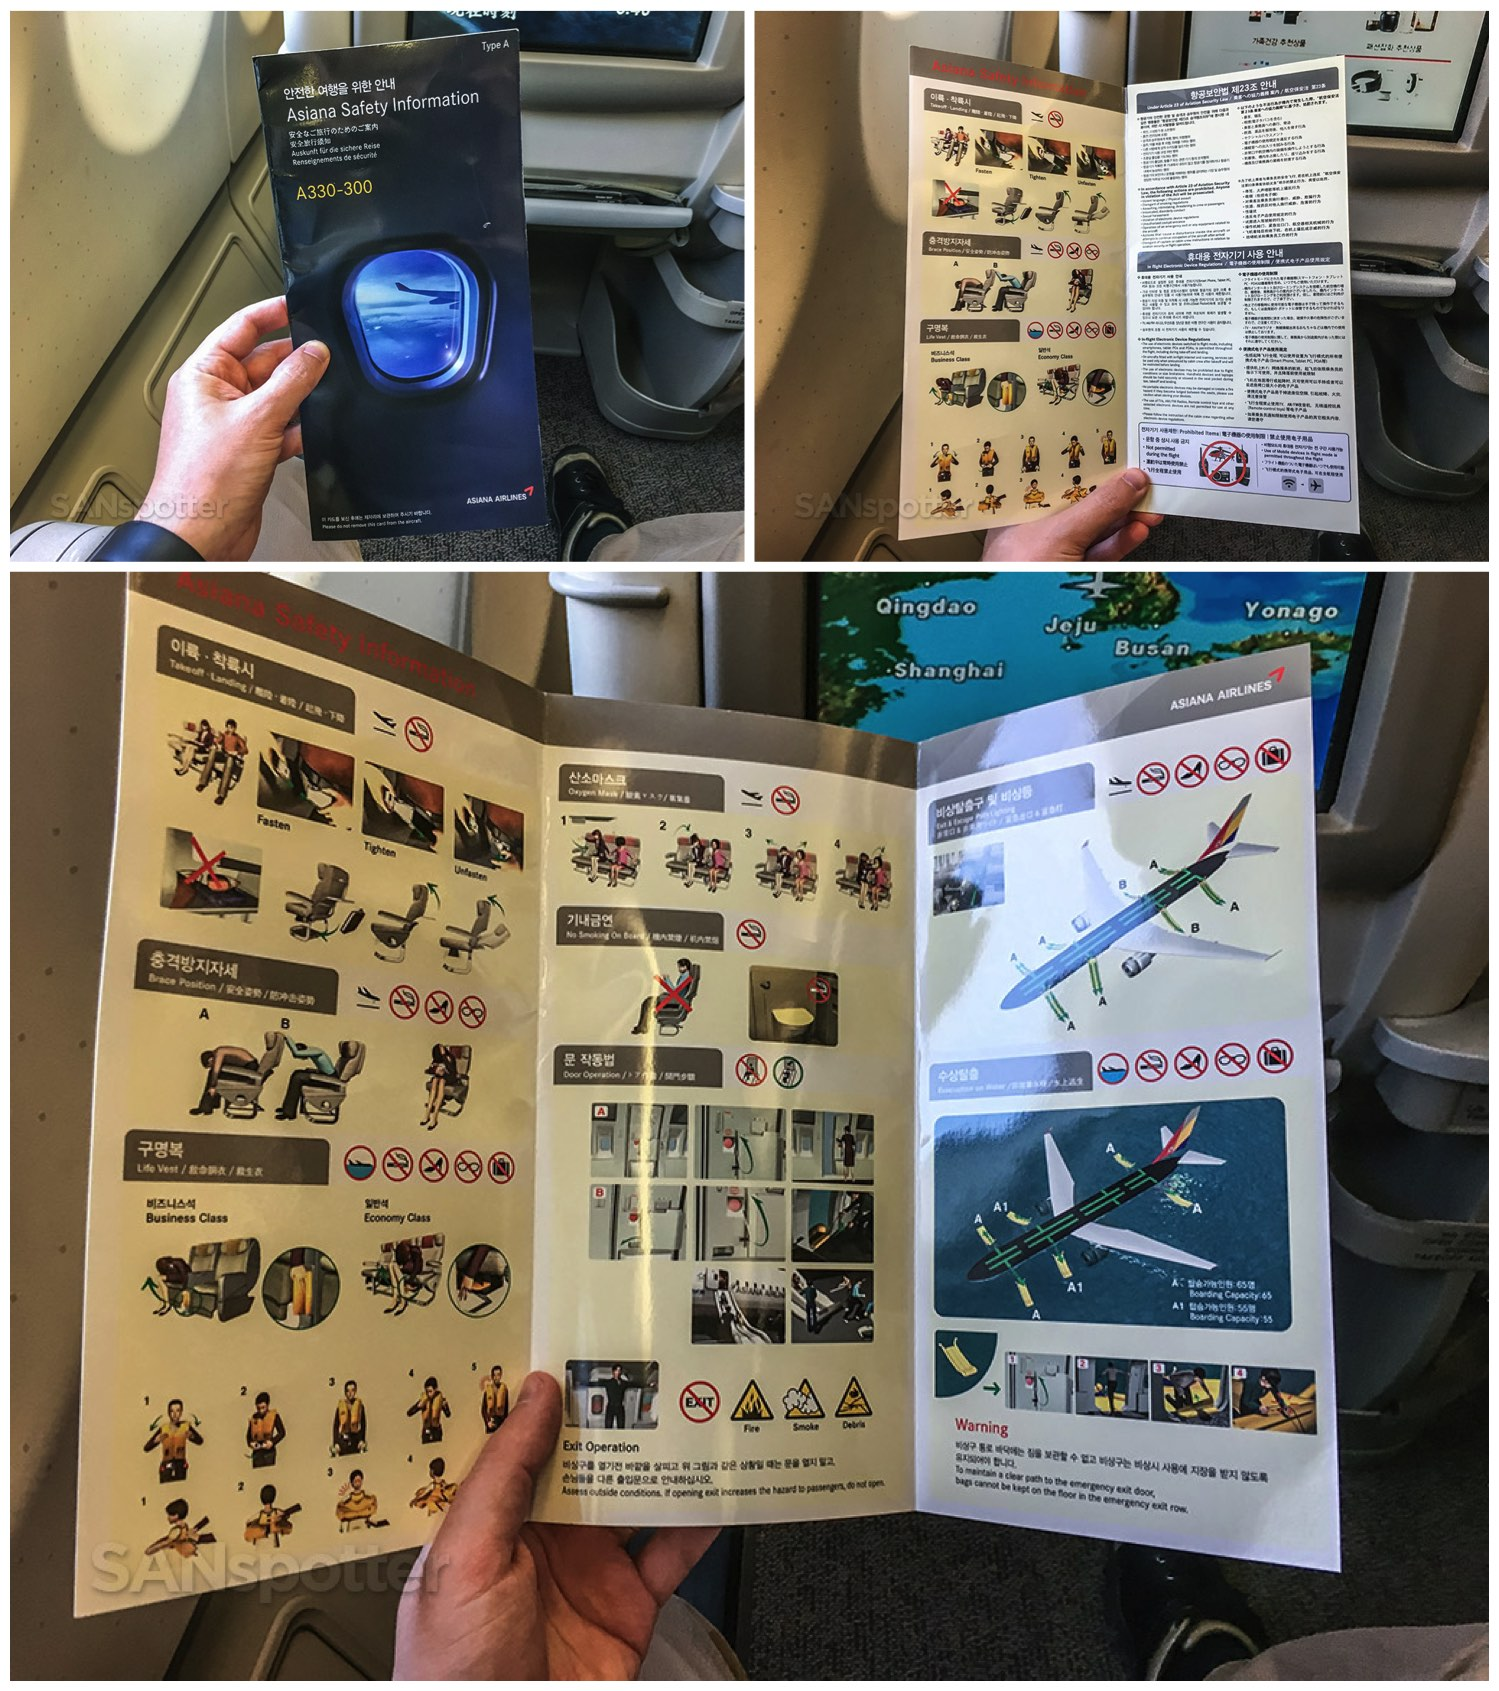 Asiana A330-300 safety card